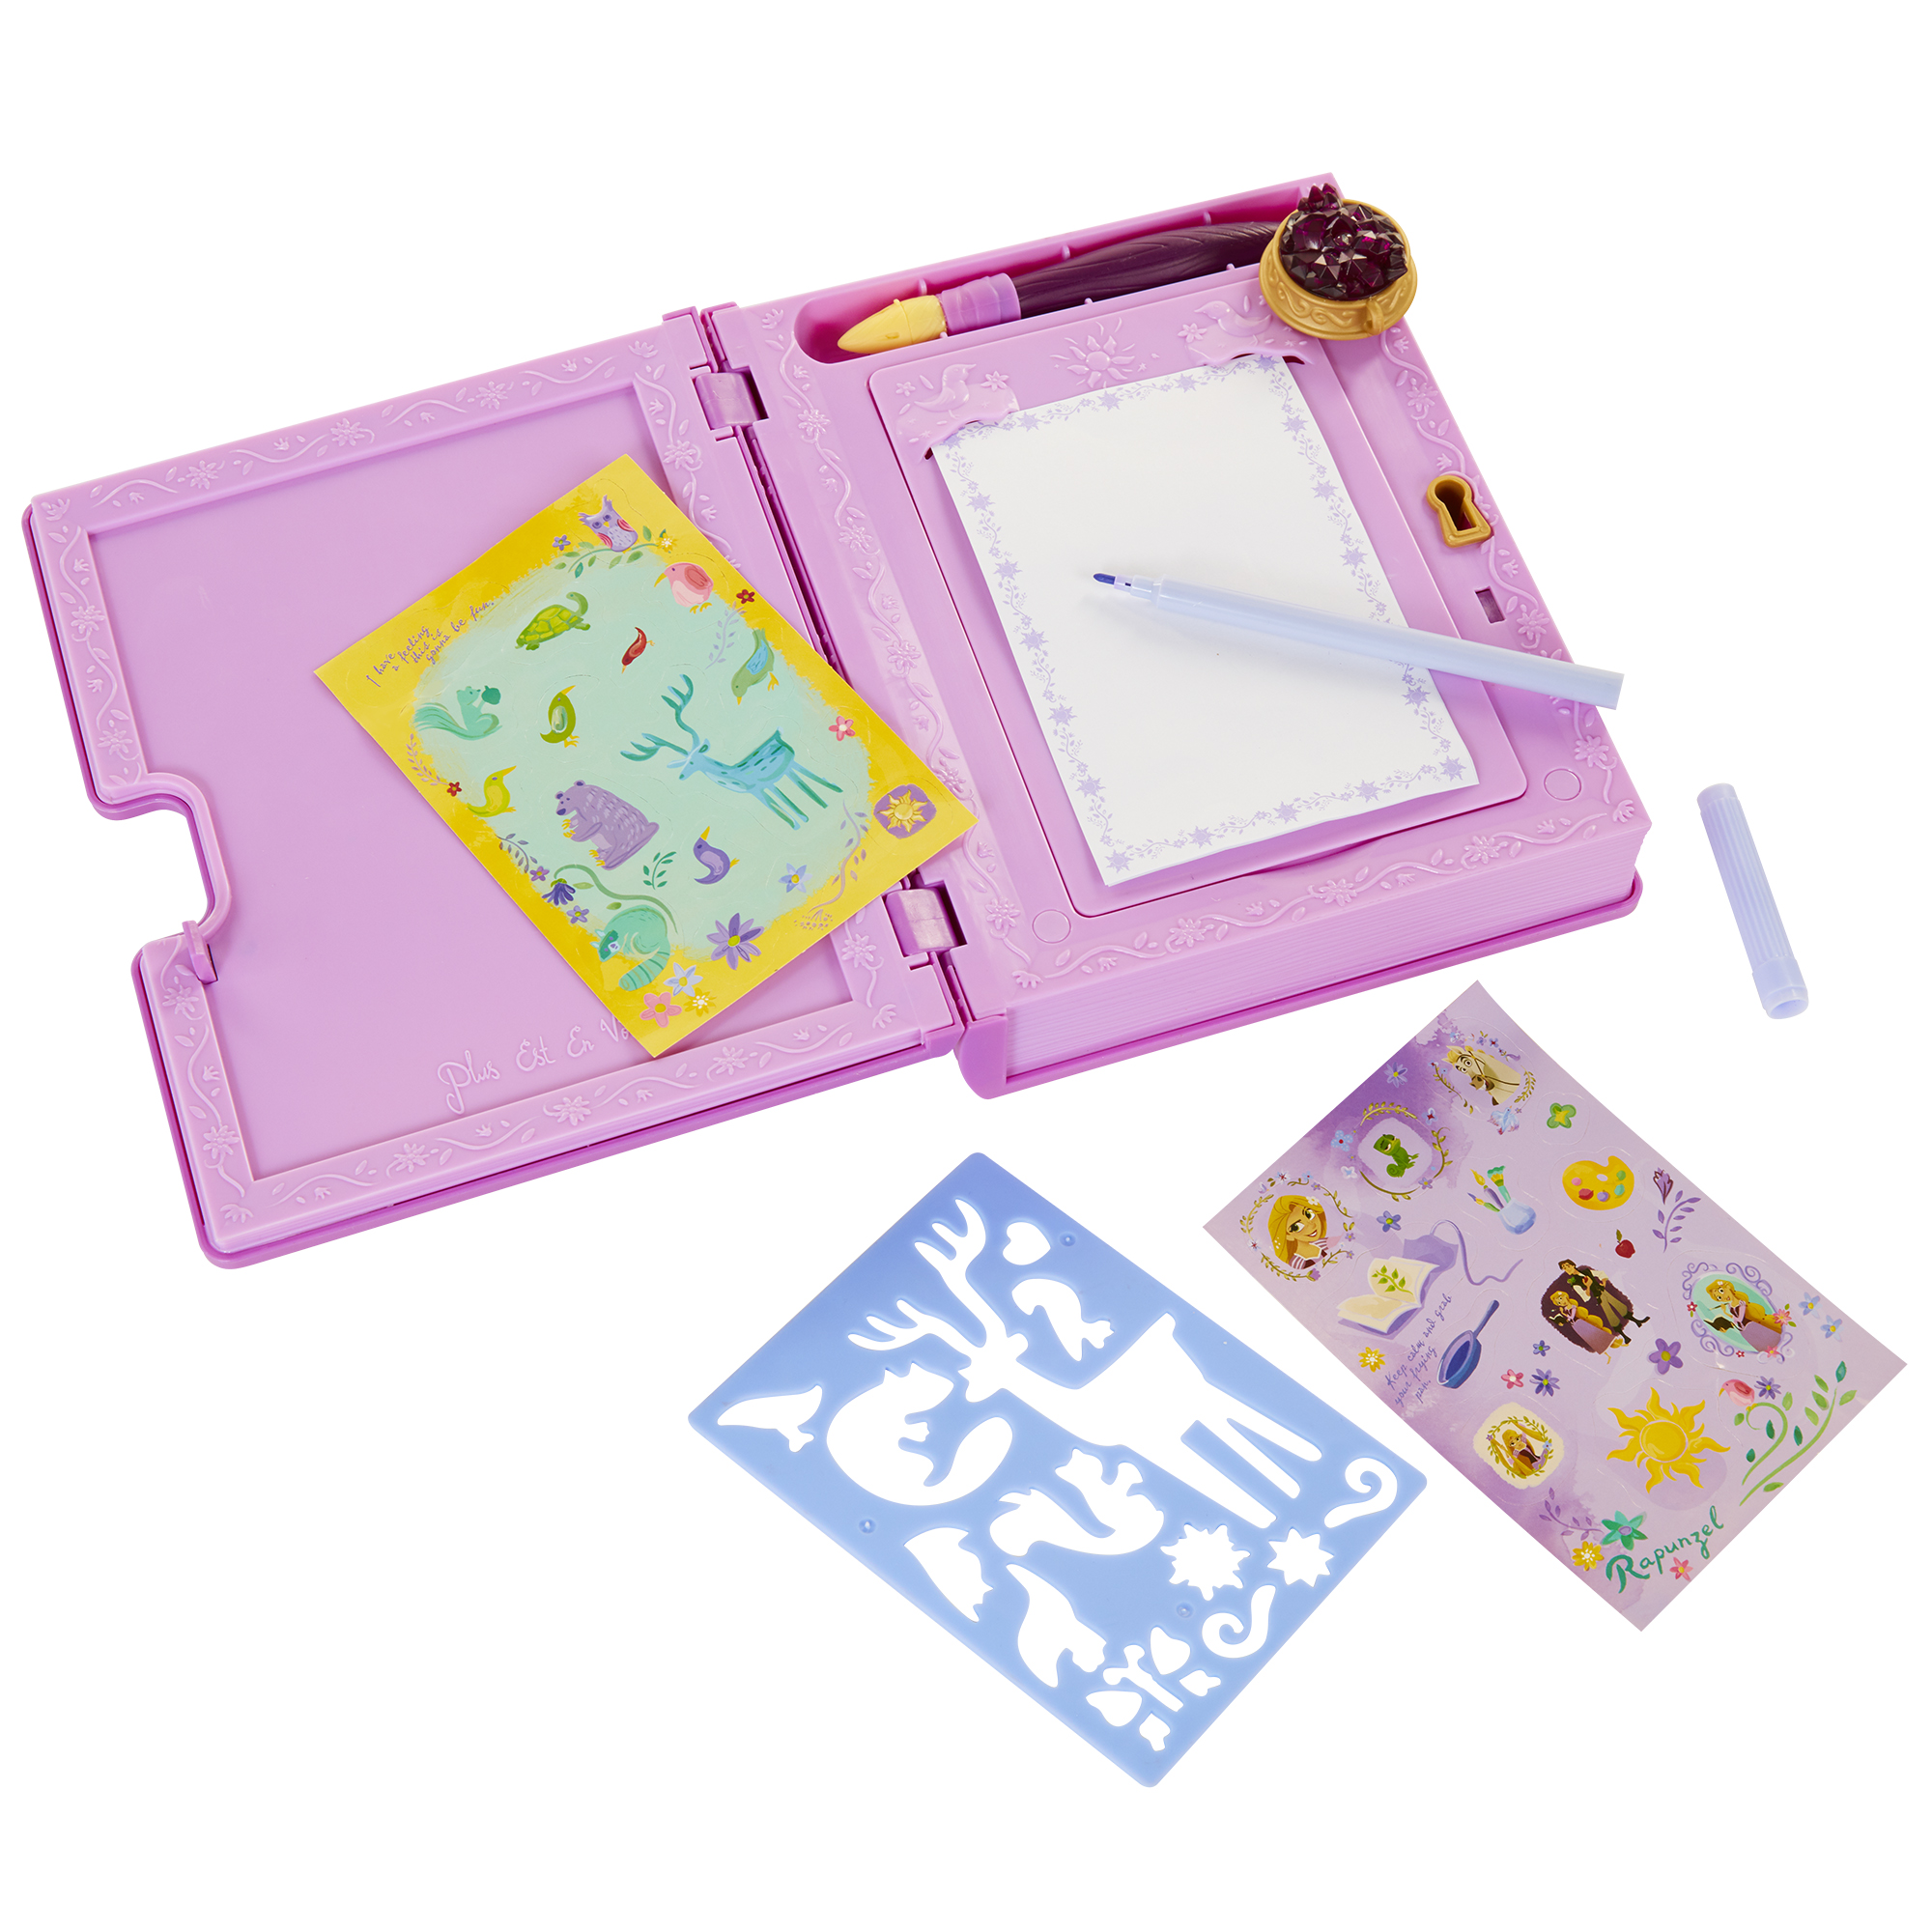 Rapunzel Secret Journal Disney Princess